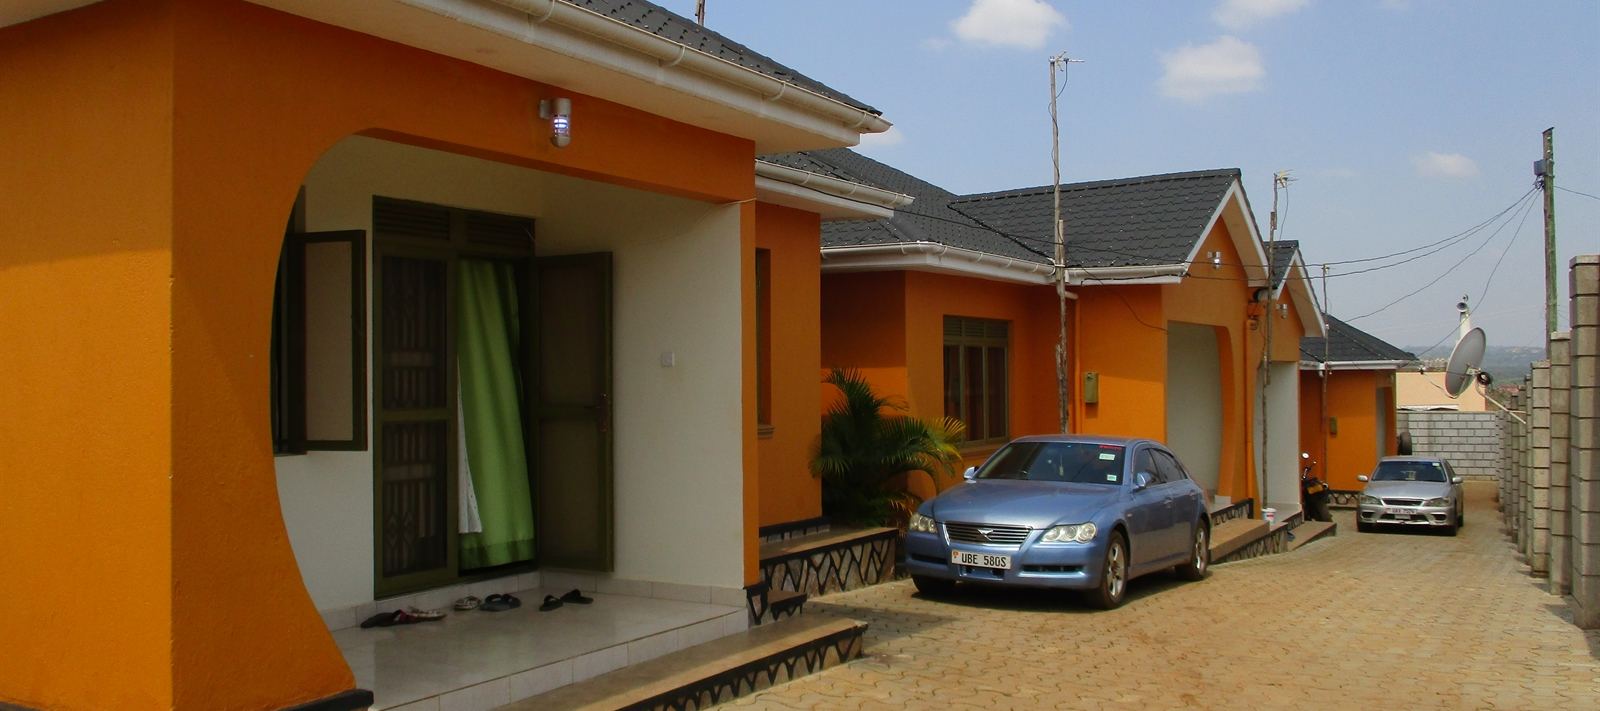 Semi-detached units manged in Mpala-Entebbe road